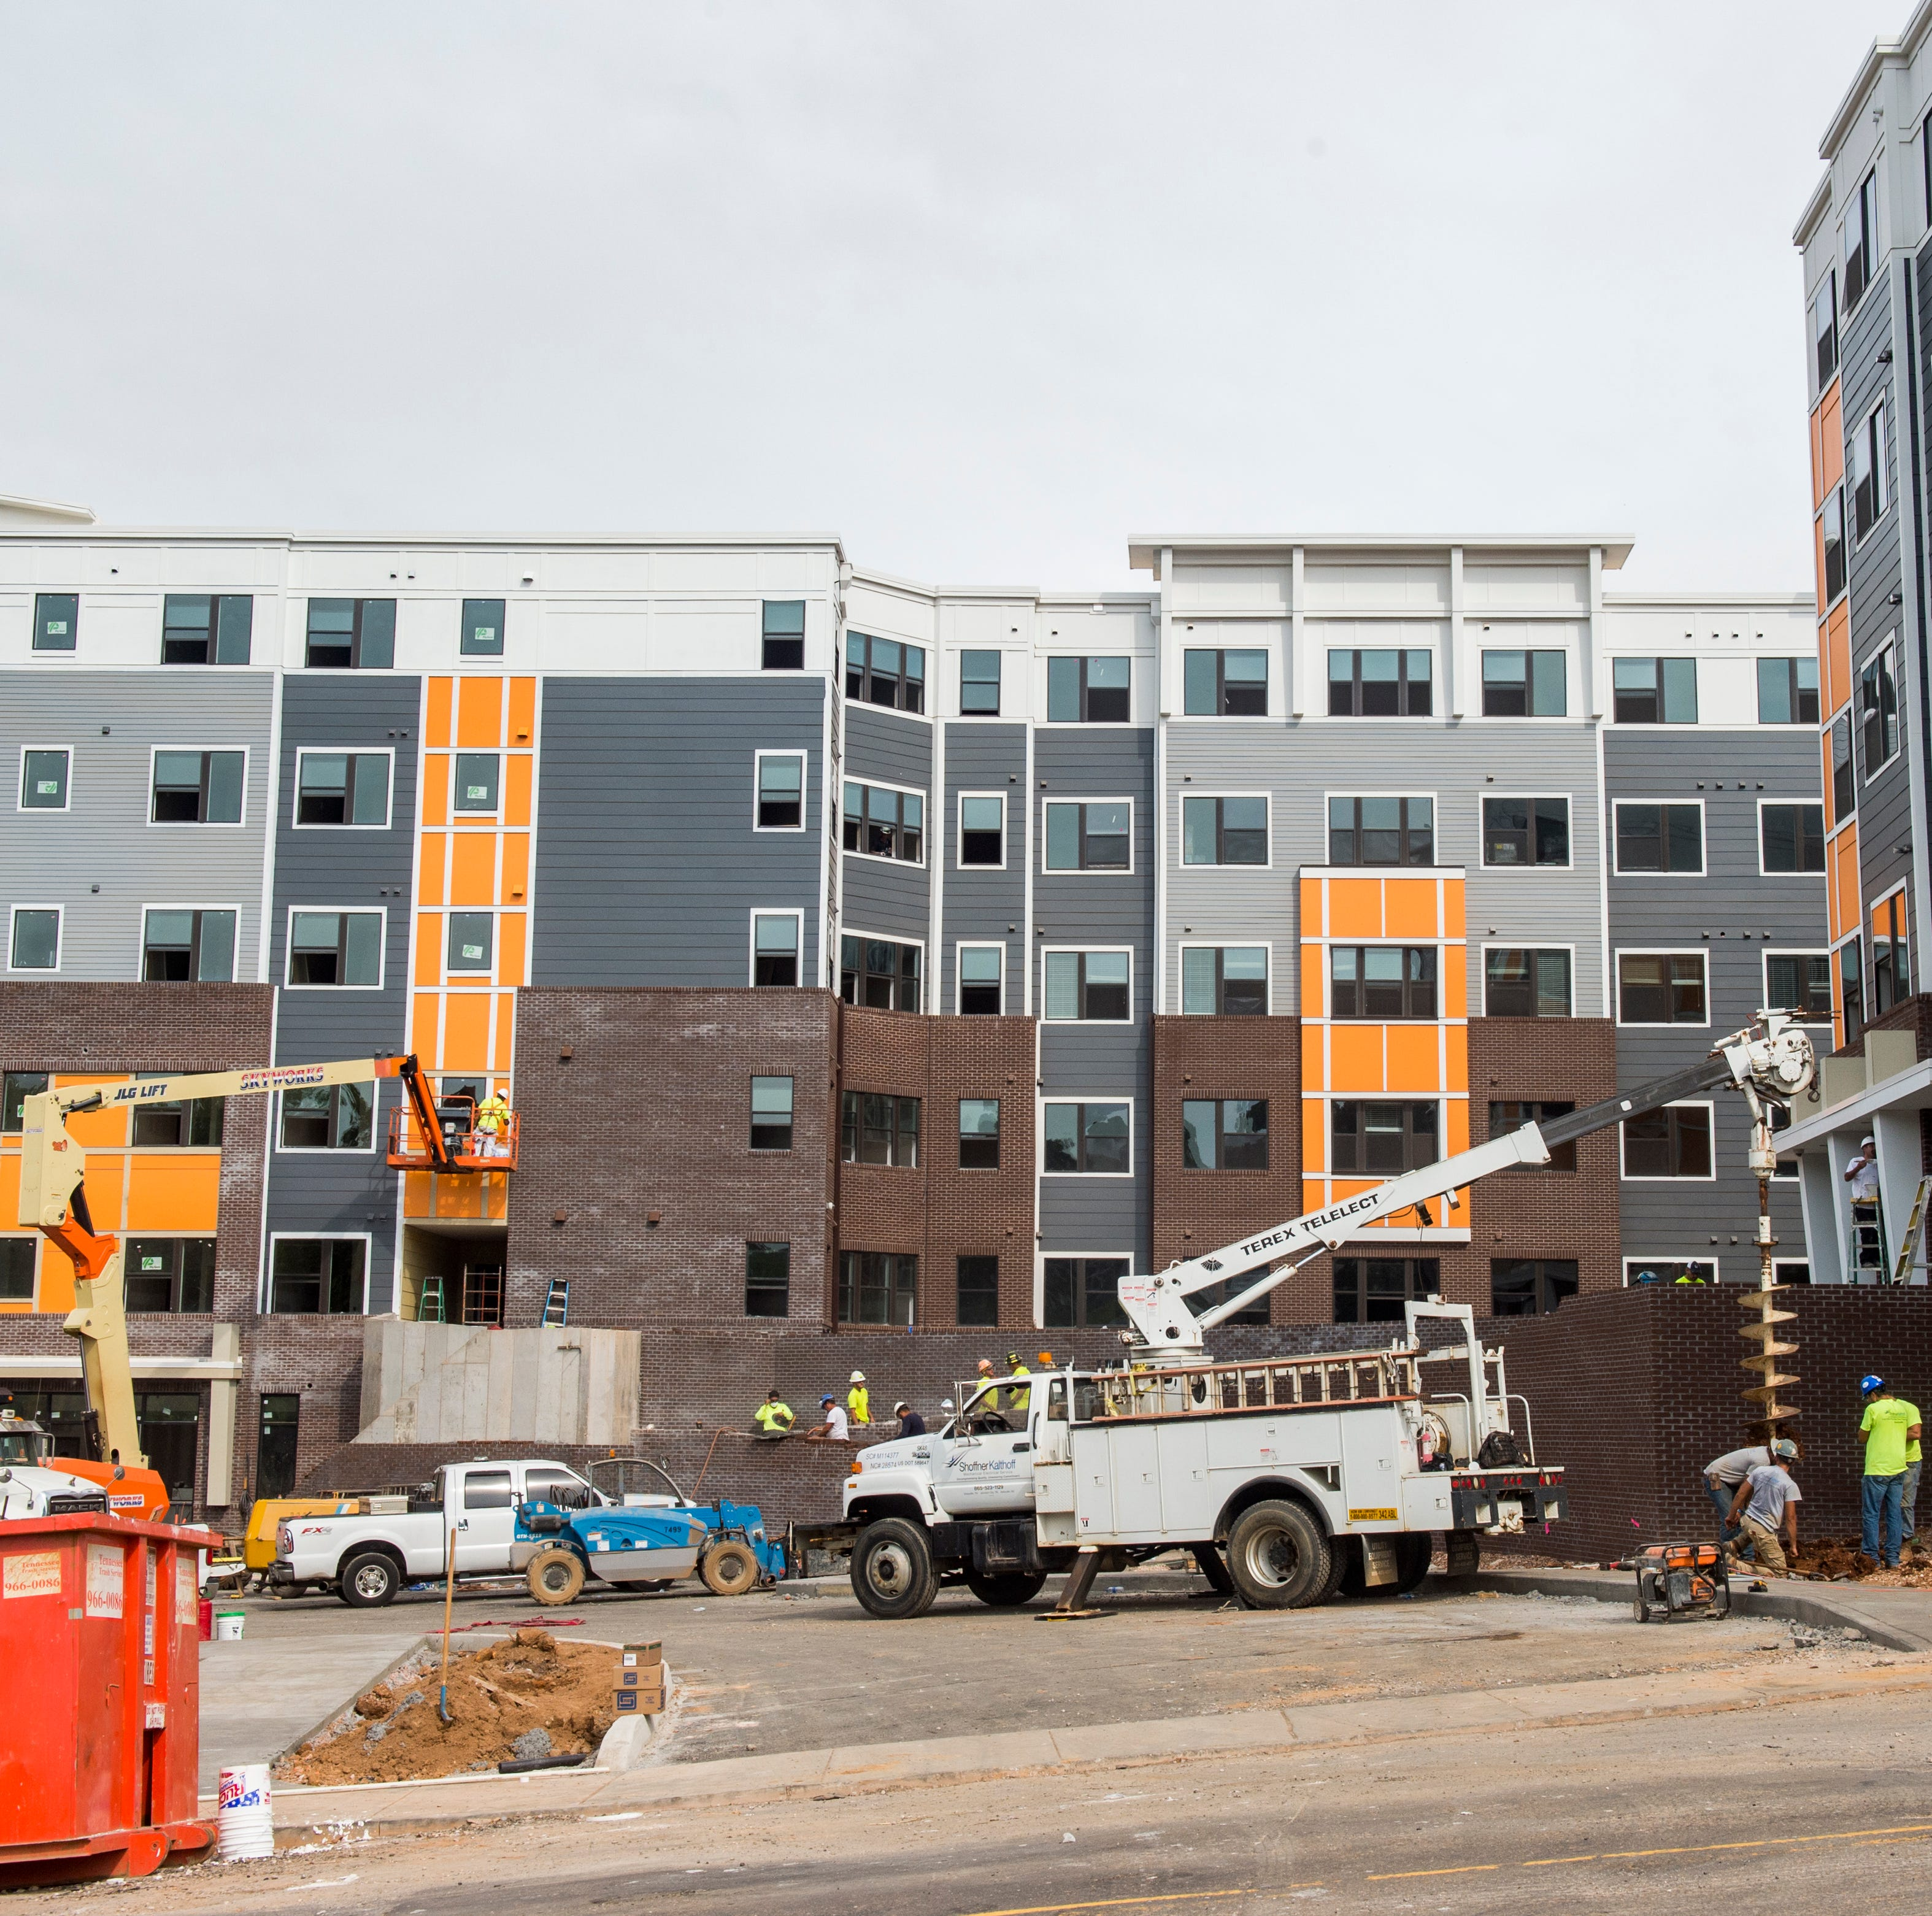 University of Tennessee, Knoxville campus undergoes several major construction projects